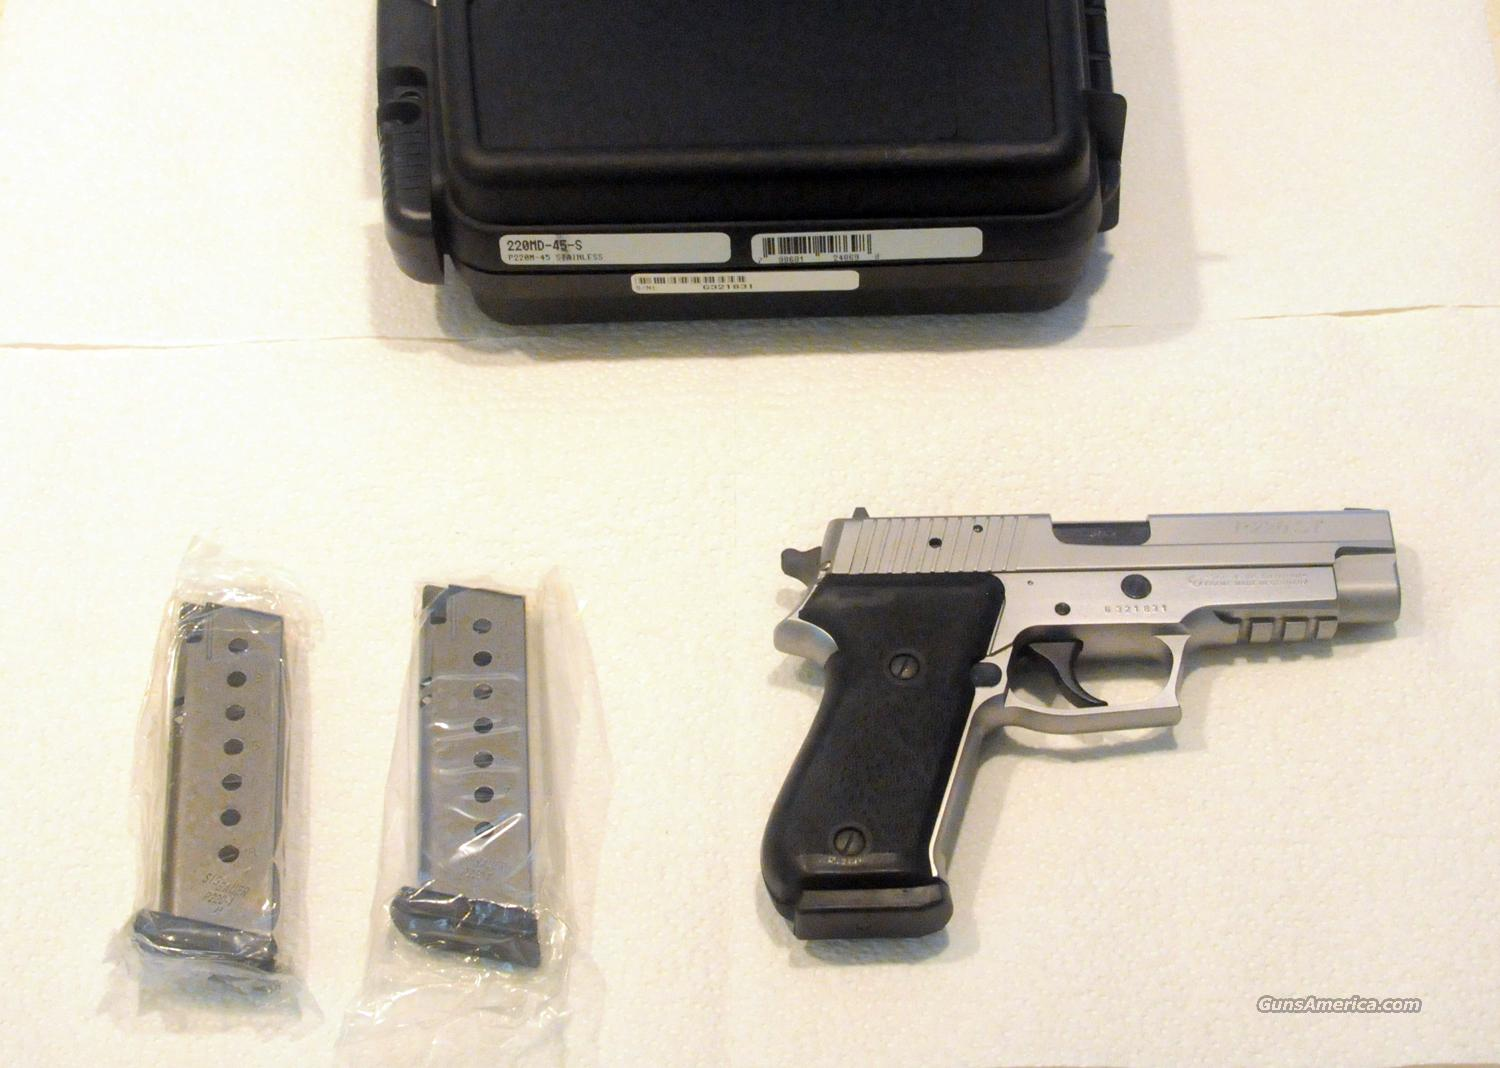 SIG P220MD-45-S Stainless Steel .45 P220 w/ ( 3 ) New Factory SS  Mags - This Was The First Stainless Steel Version Of The SIG P220 - Very Rare Variant - NIB [ 8/24 SOLD PENDING FUNDS ]  Guns > Pistols > Sig - Sauer/Sigarms Pistols > P220